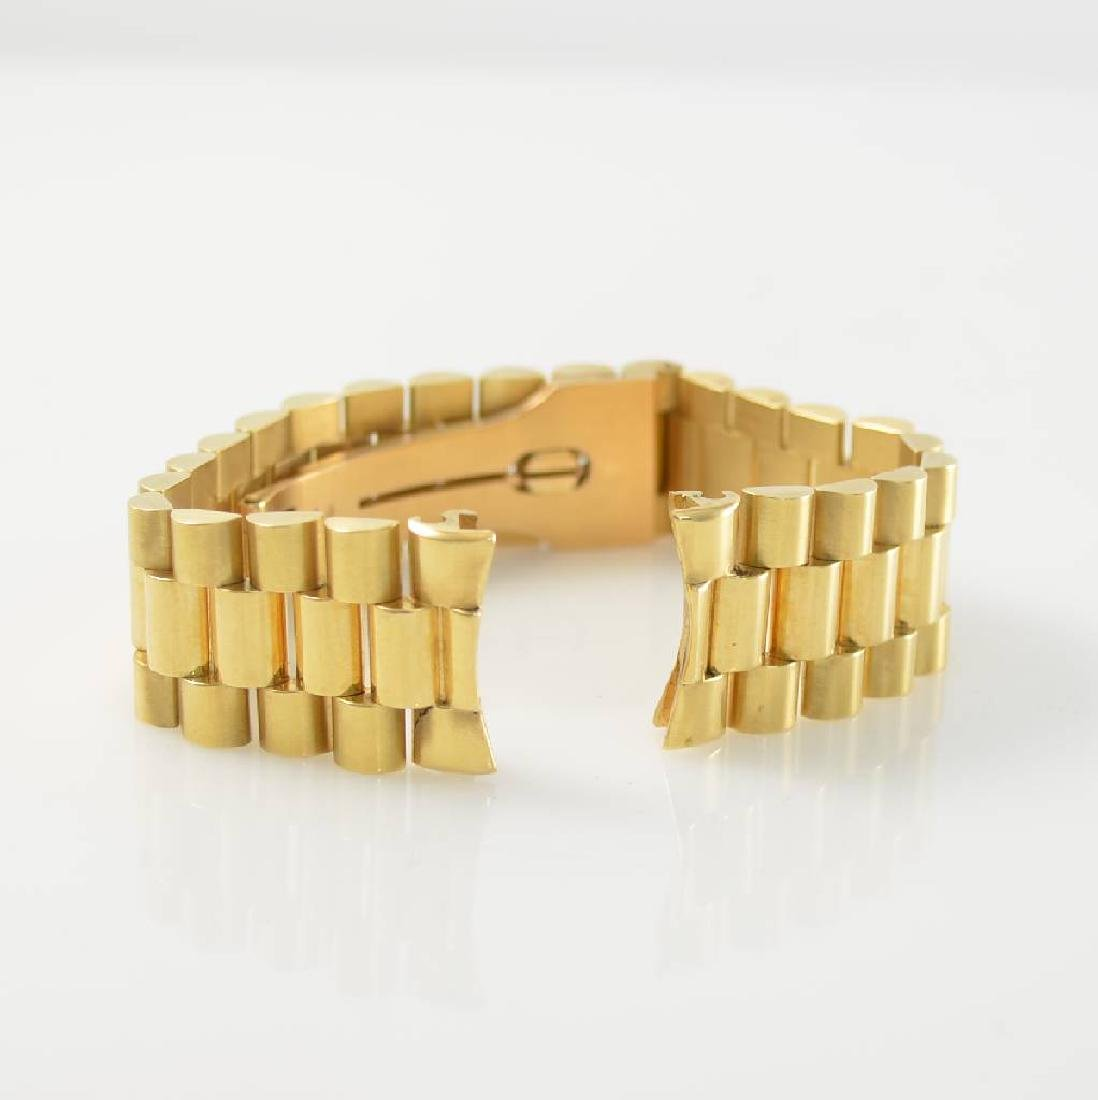 Watch-bracelet in 18k gold with deployant clasp